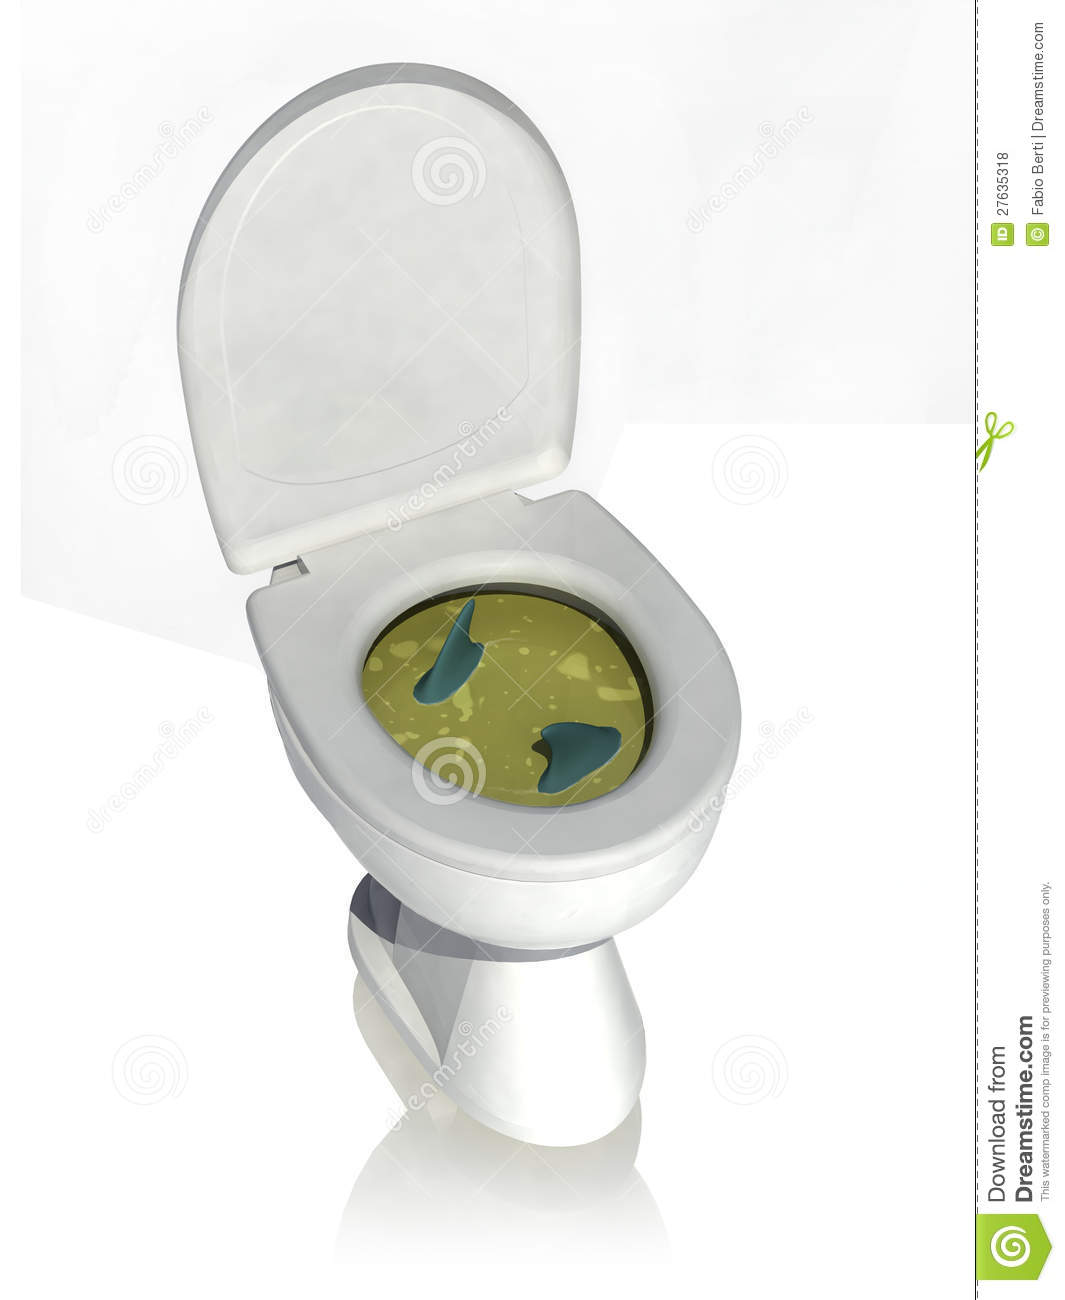 Dirty Toilet Clipart - Clipart Kid